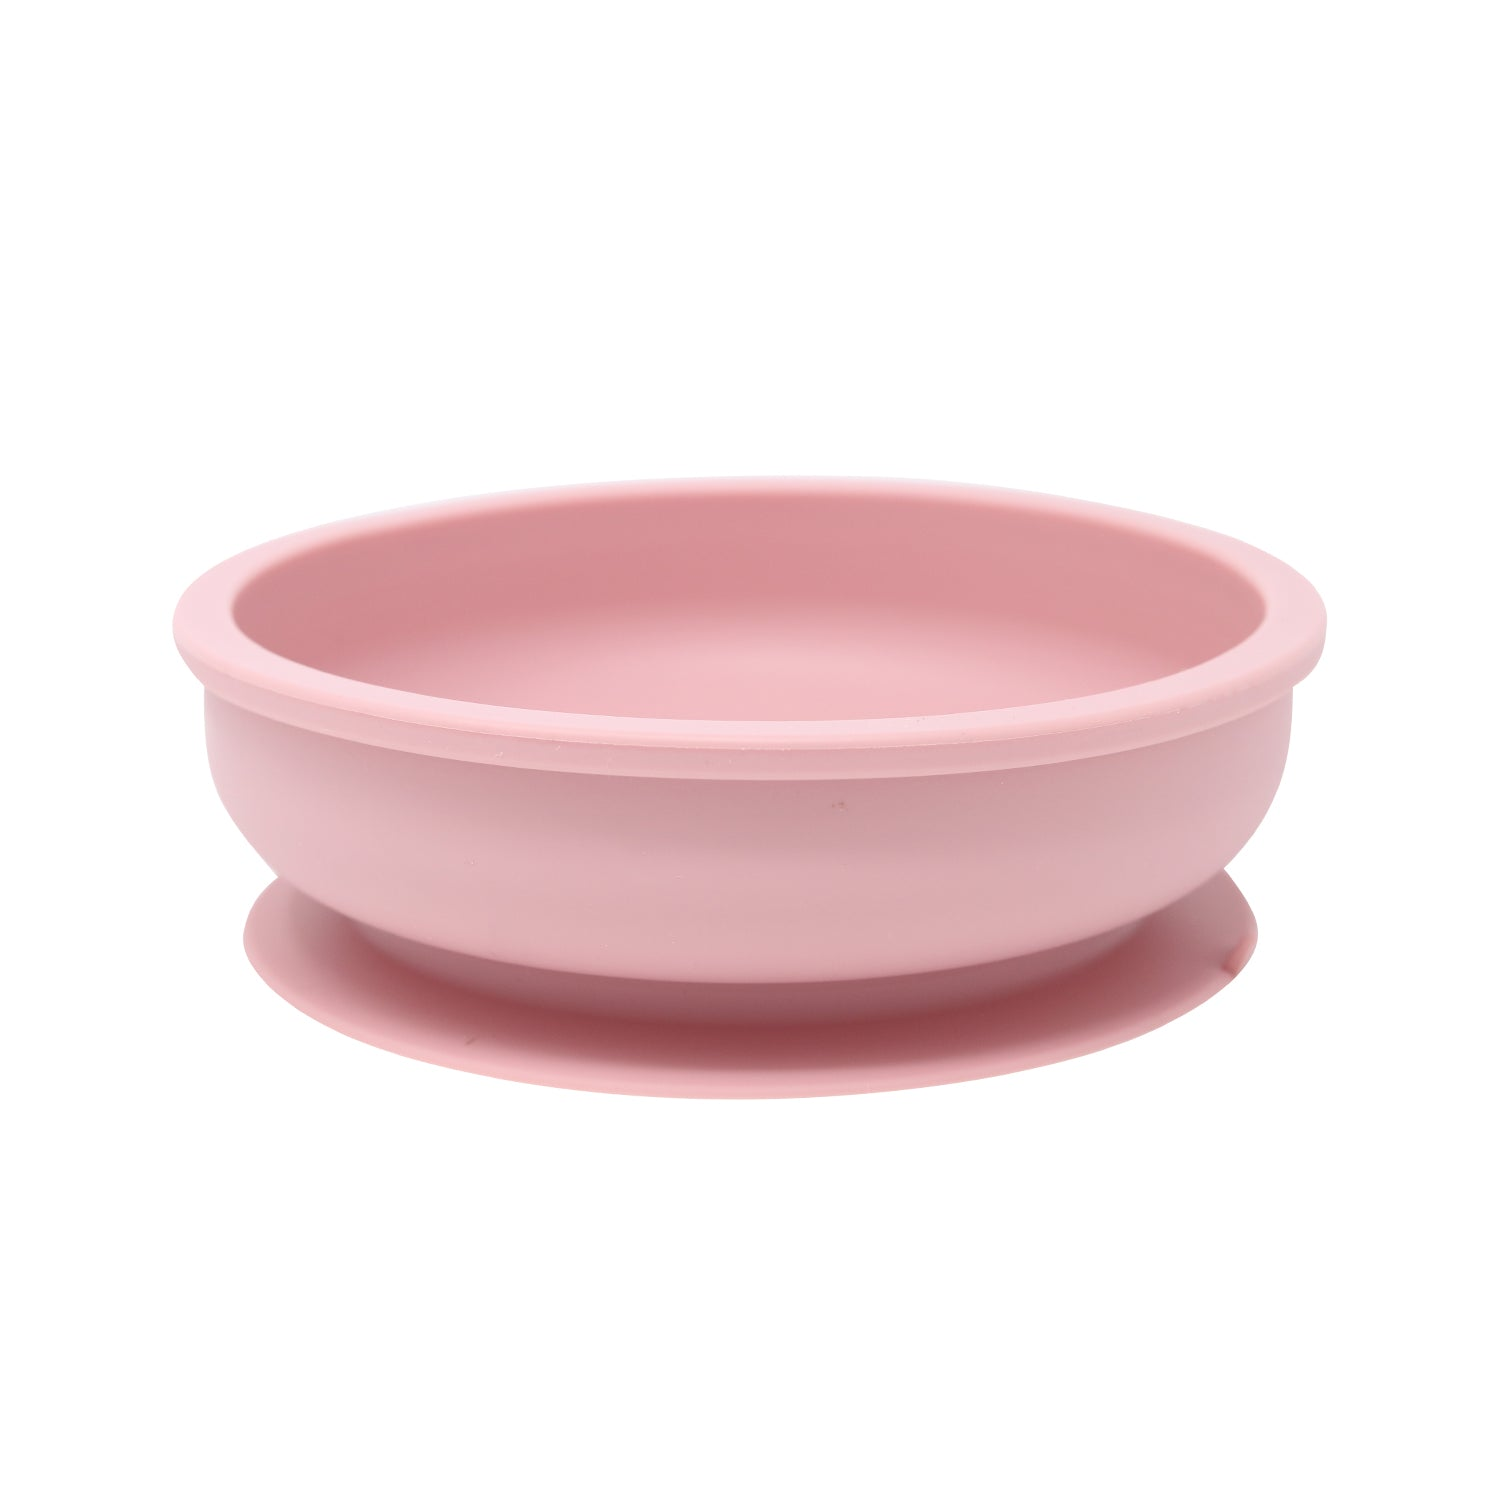 SILICONE SNACK BOWL FACTORY SECONDS